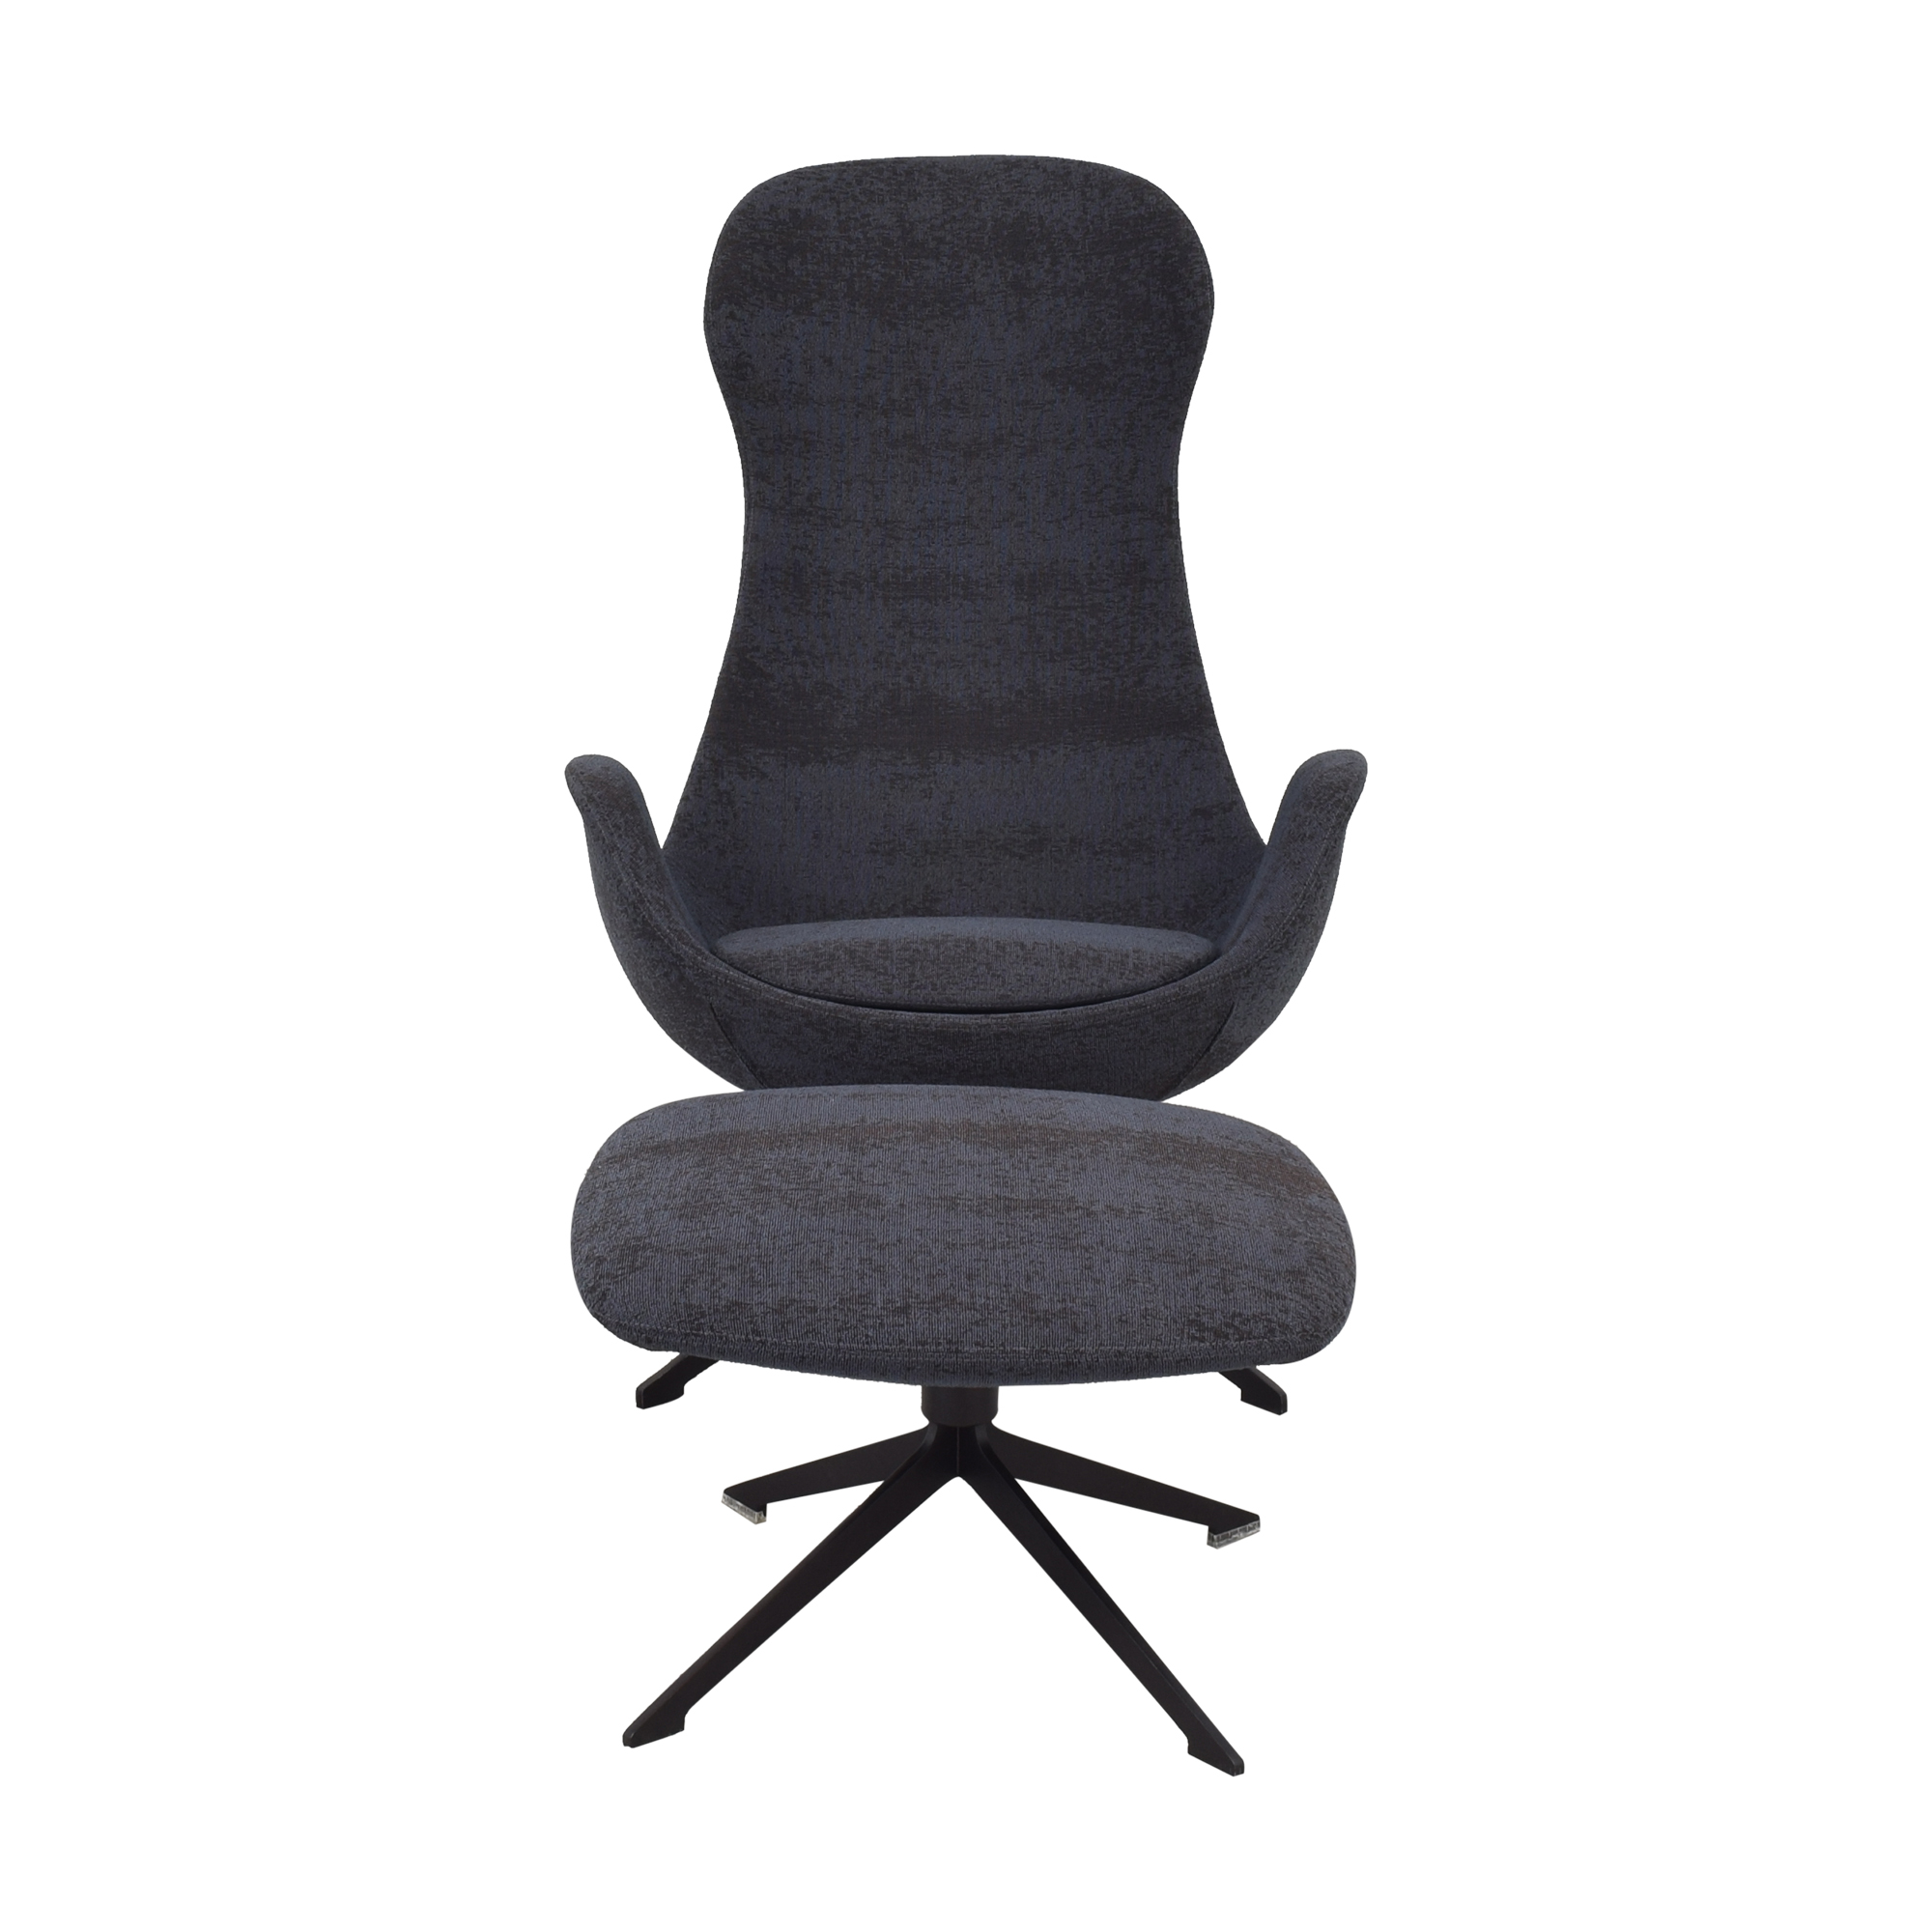 shop Koleksiyon Halia High Back Armchair with Ottoman Koleksiyon Chairs